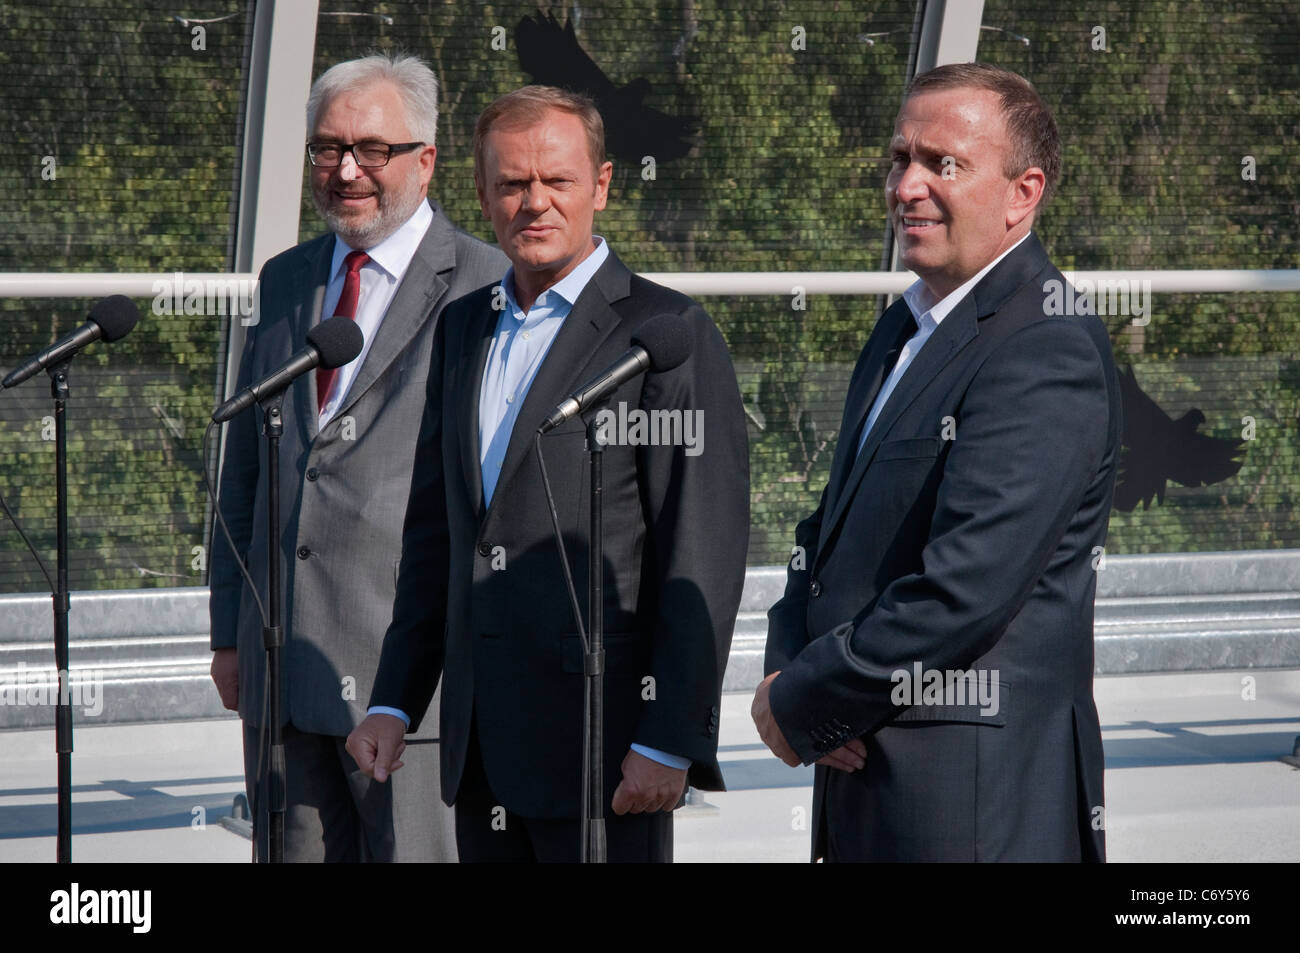 Prime Minister of Poland Donald Tusk speaking at opening day at new Redzinski Bridge in Wrocław, Lower Silesia, - Stock Image